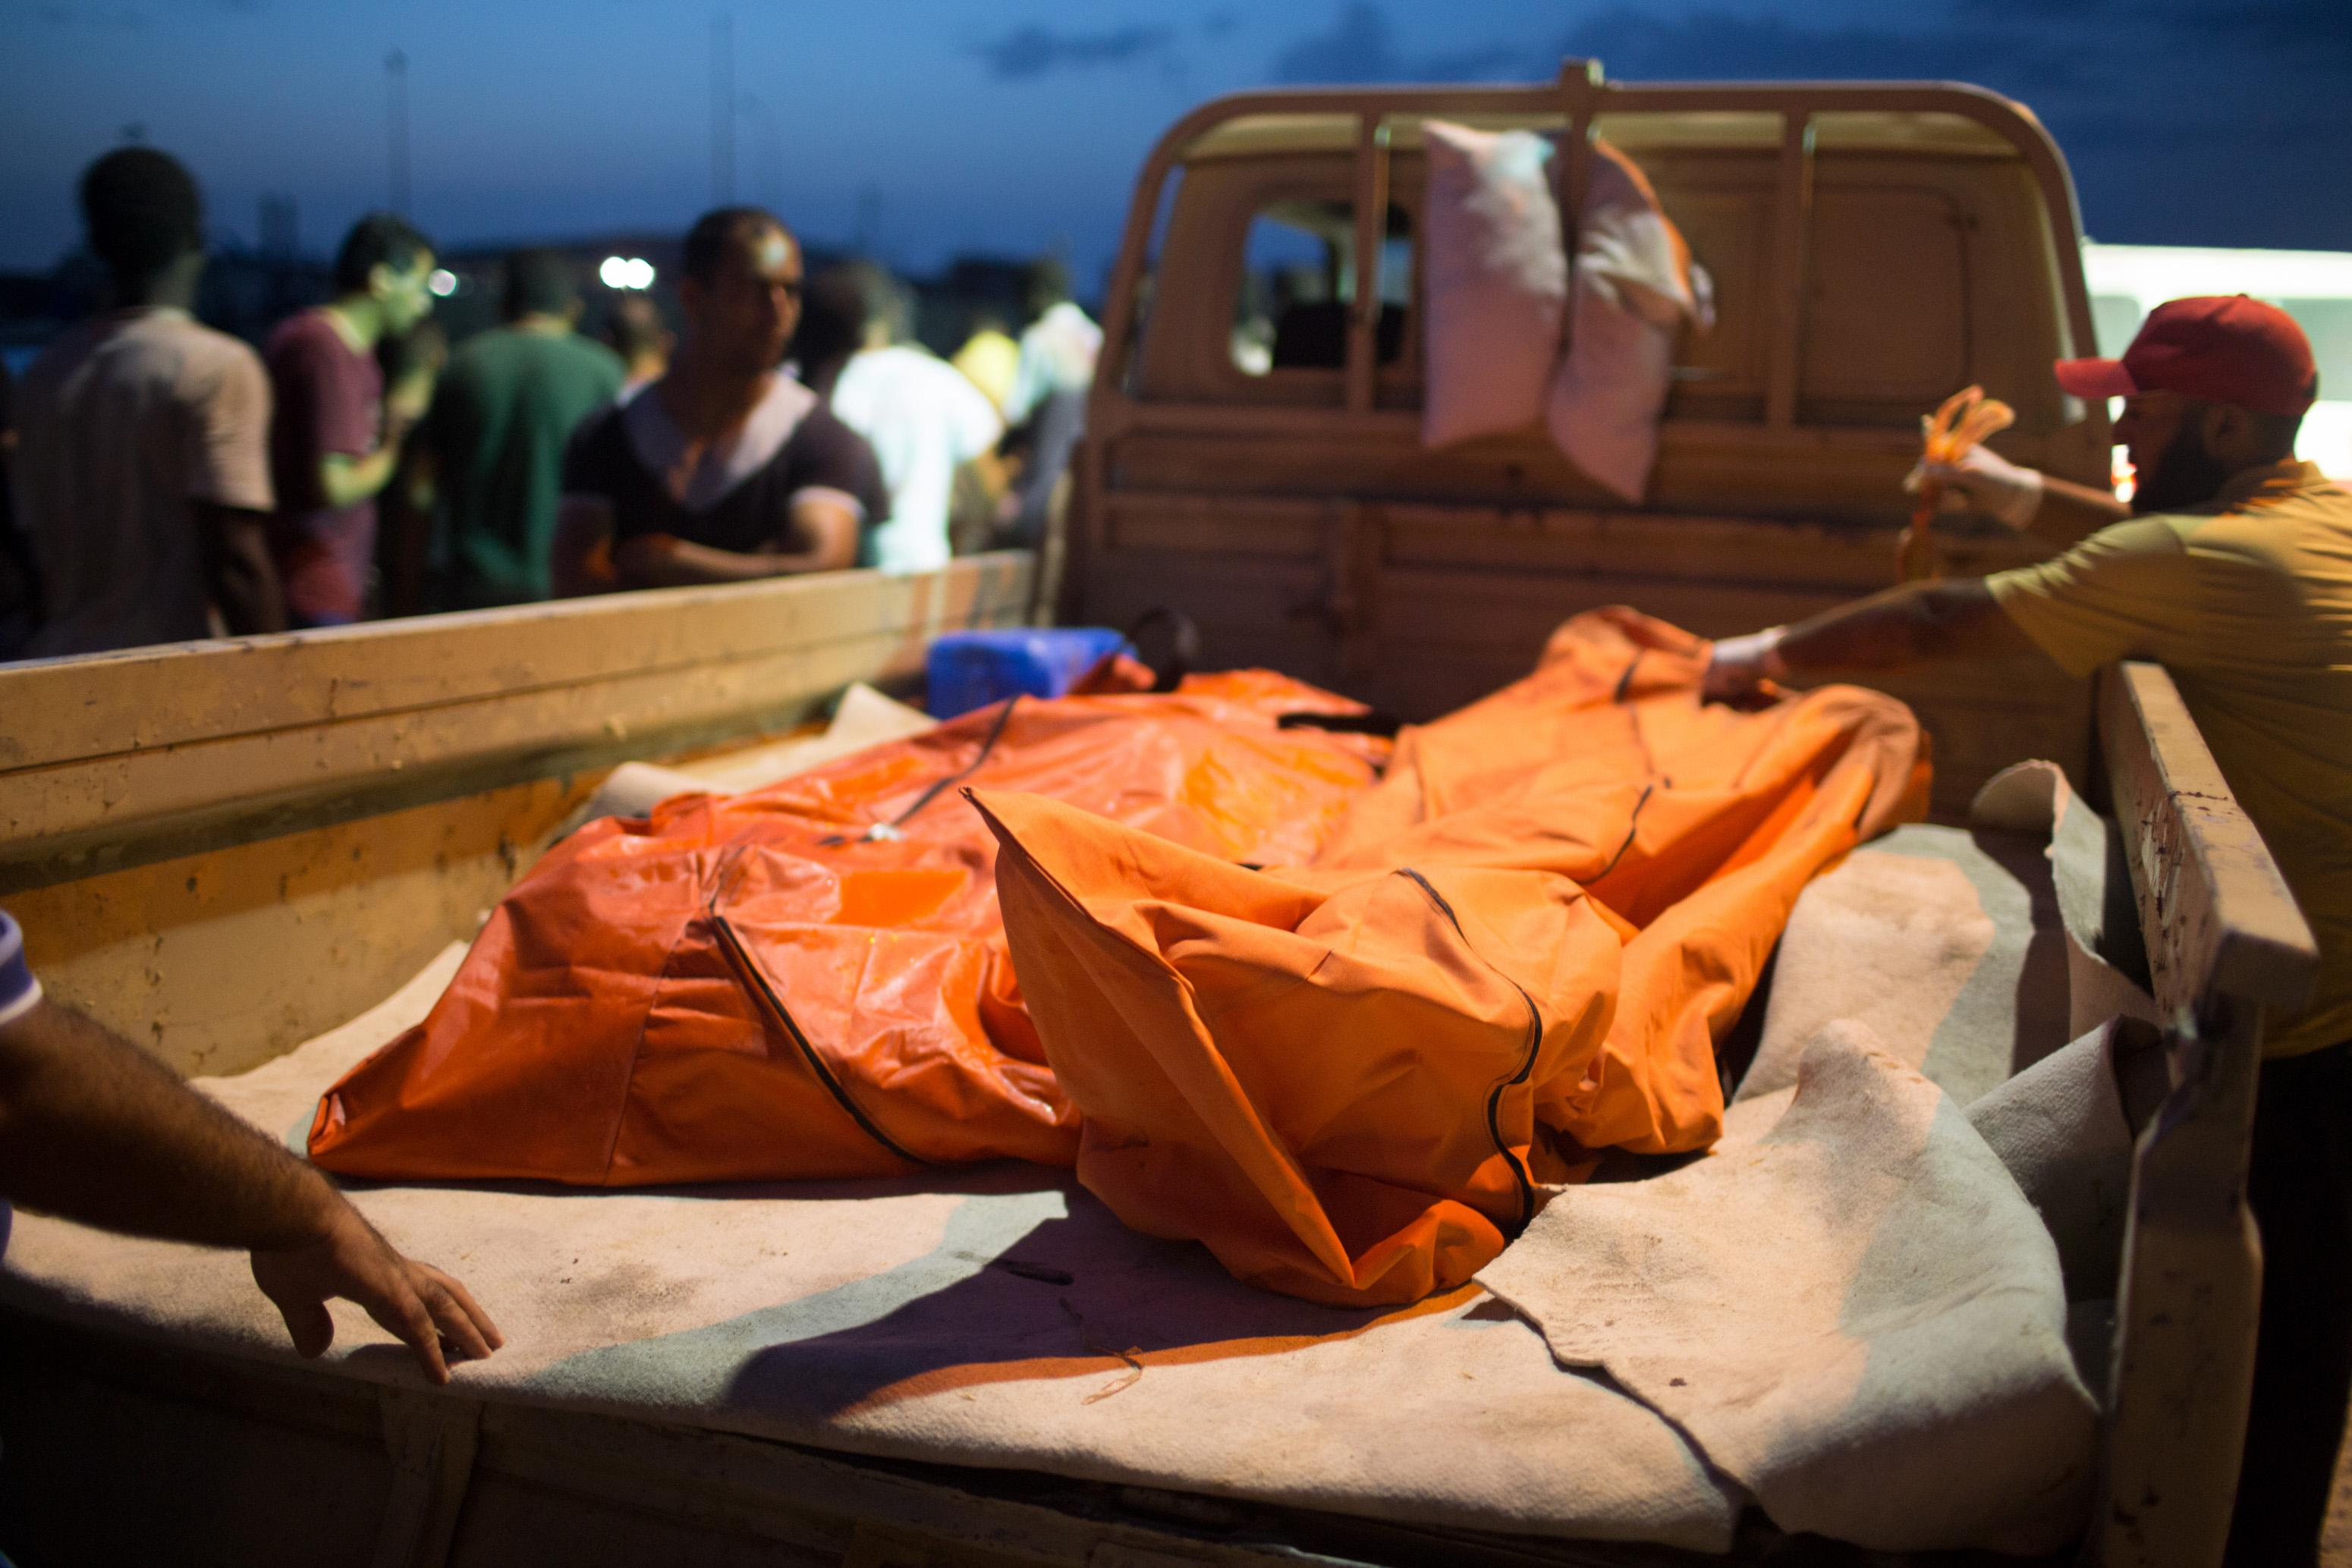 Libya collects victims' bodies from latest migrant disaster